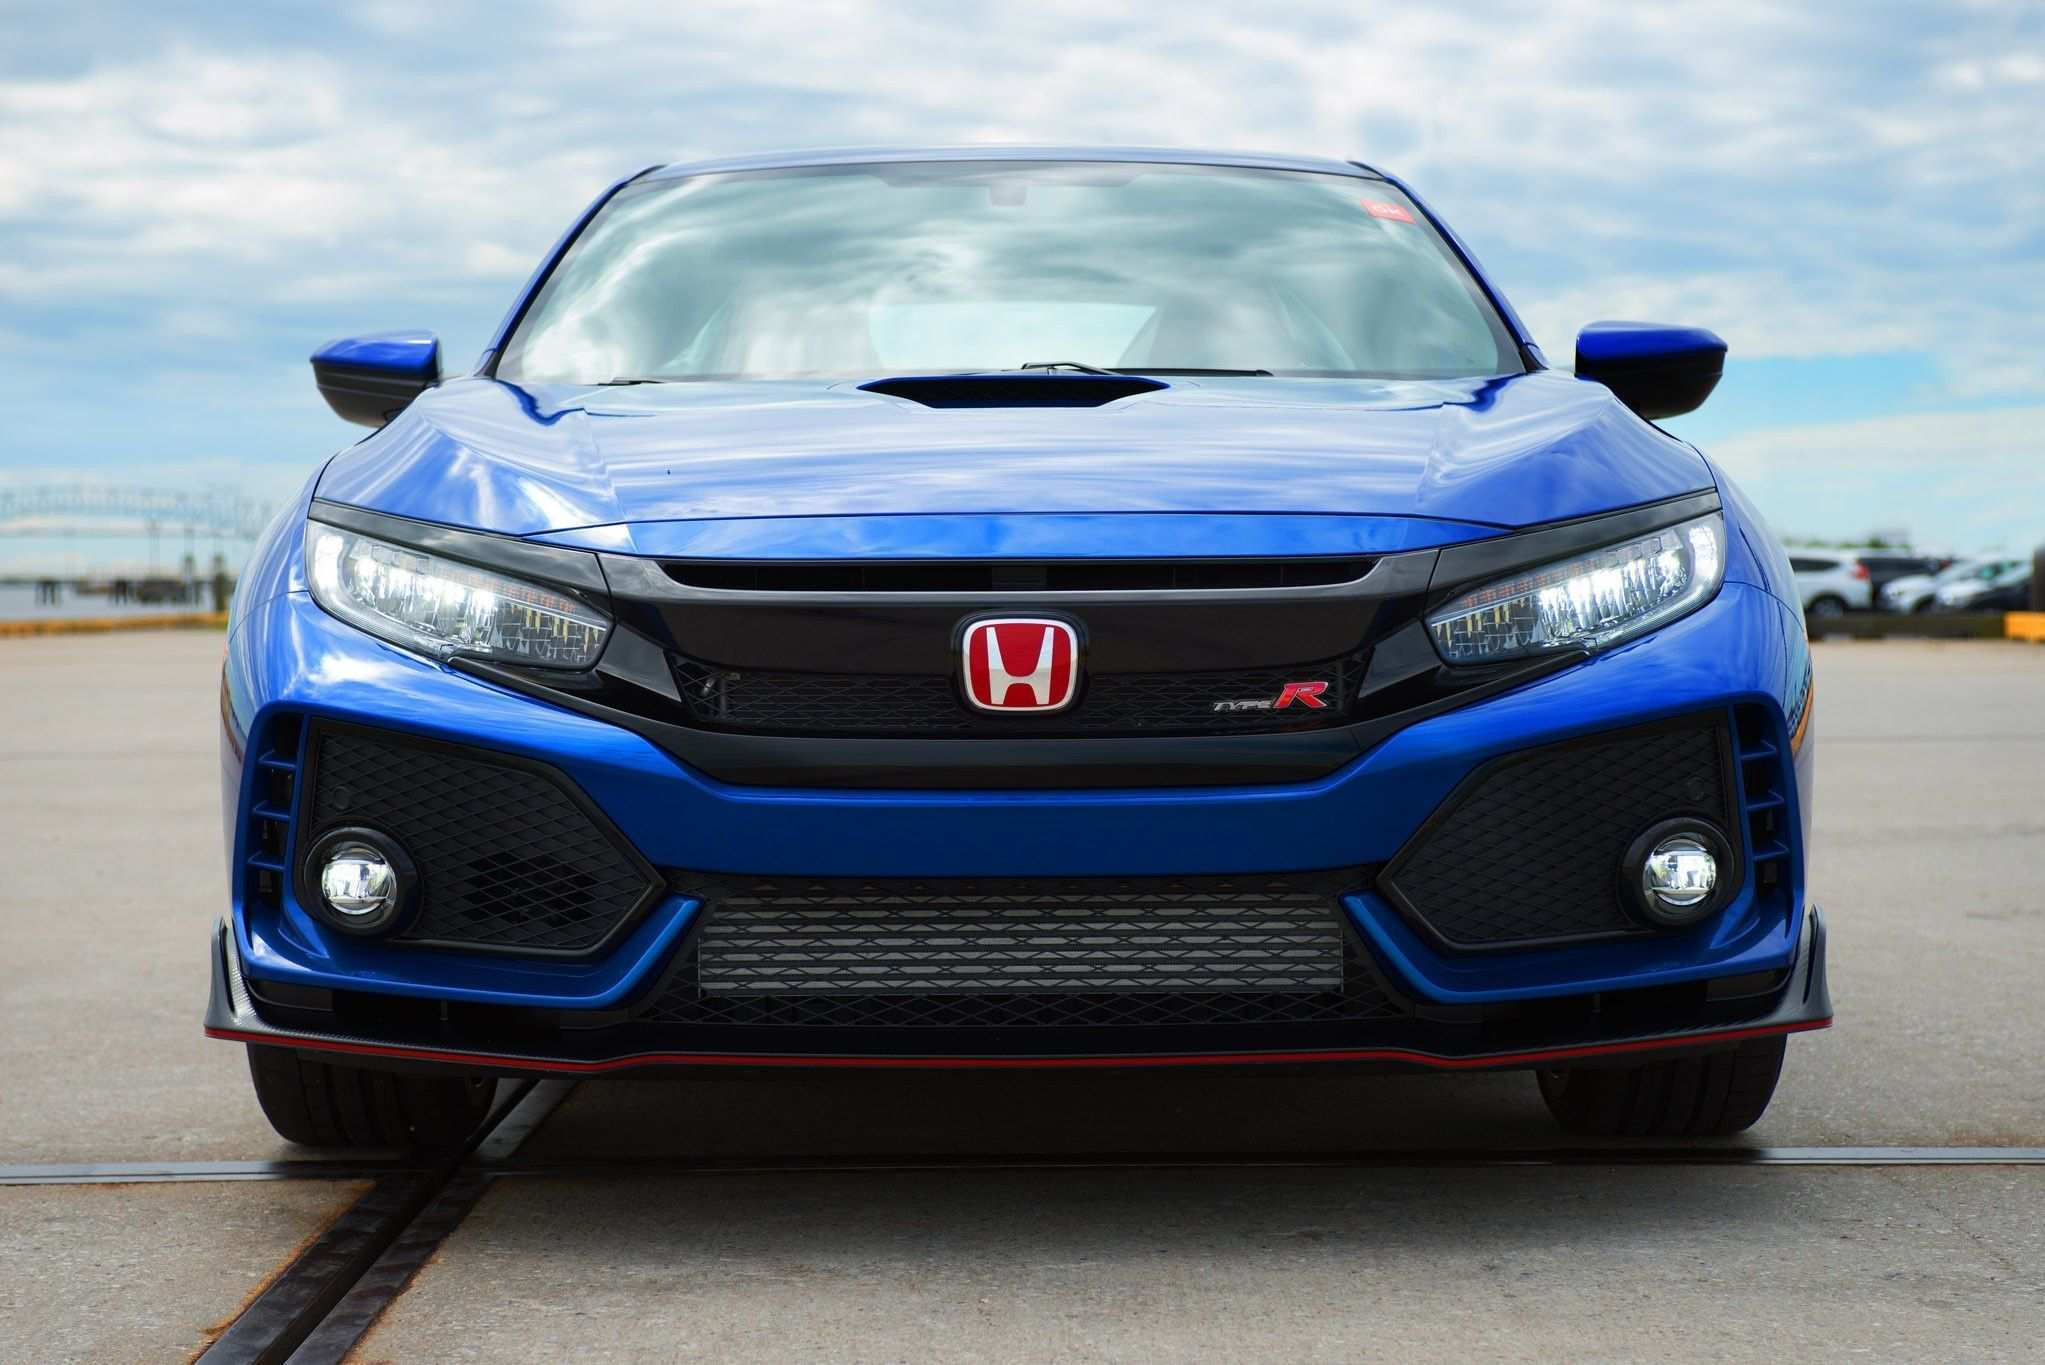 63 Concept of 2020 Honda Civic Exterior Date History with 2020 Honda Civic Exterior Date